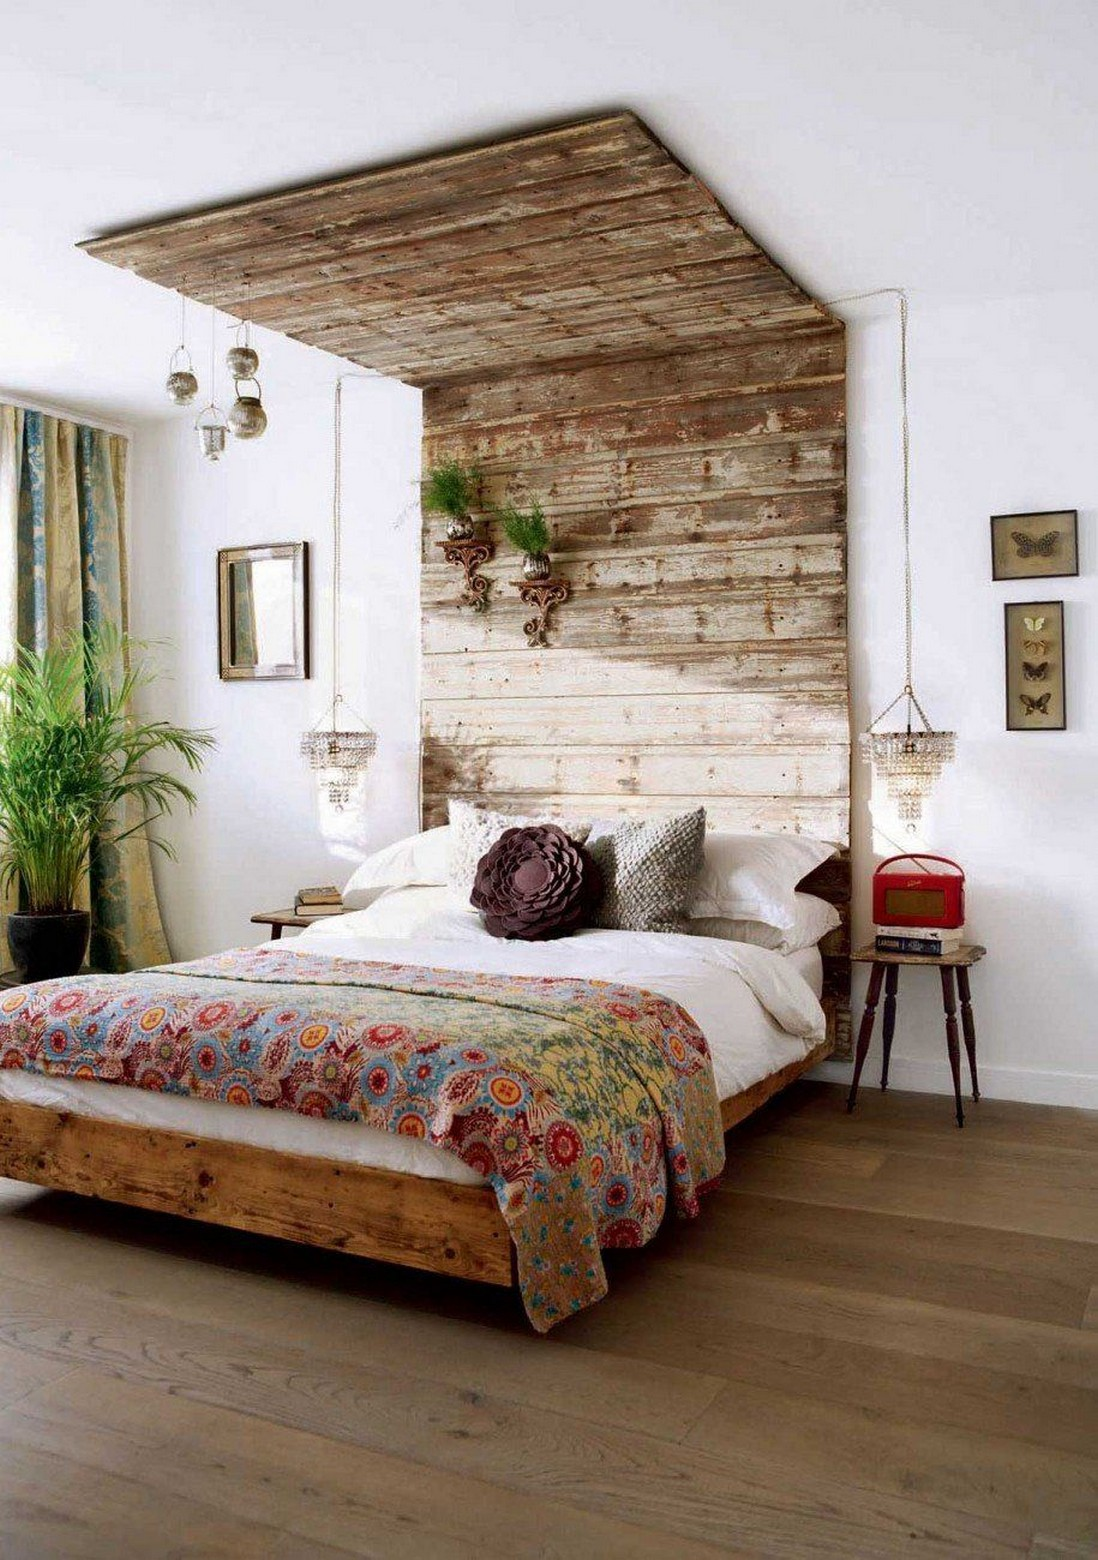 64 Rustic Bedroom Furniture How to Look Elegance Home Decor 23